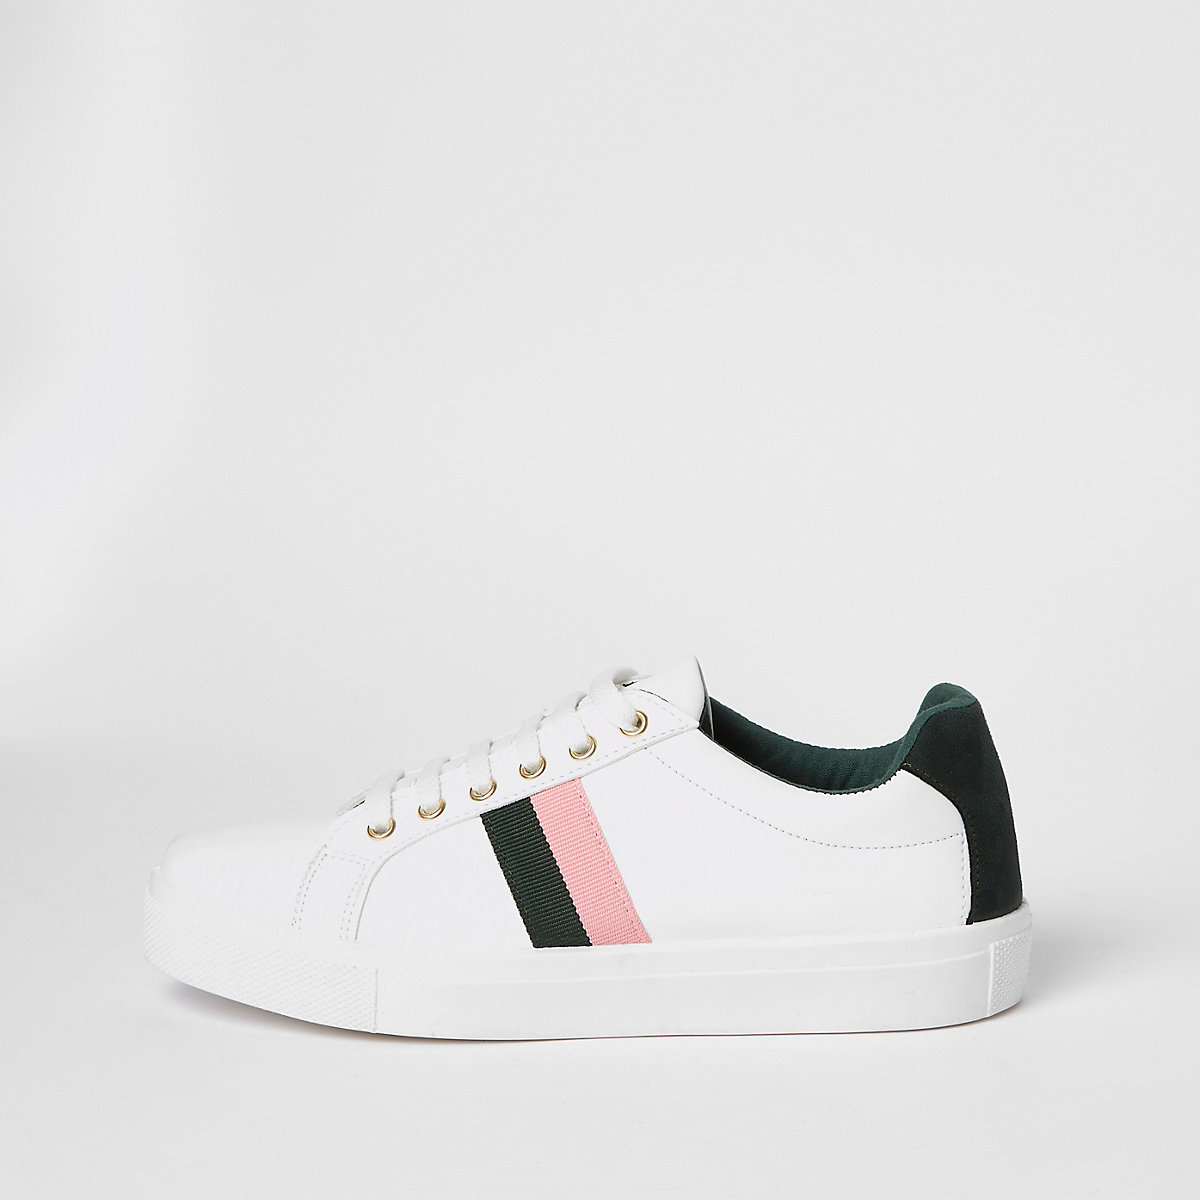 White lace-up side stripe sneakers